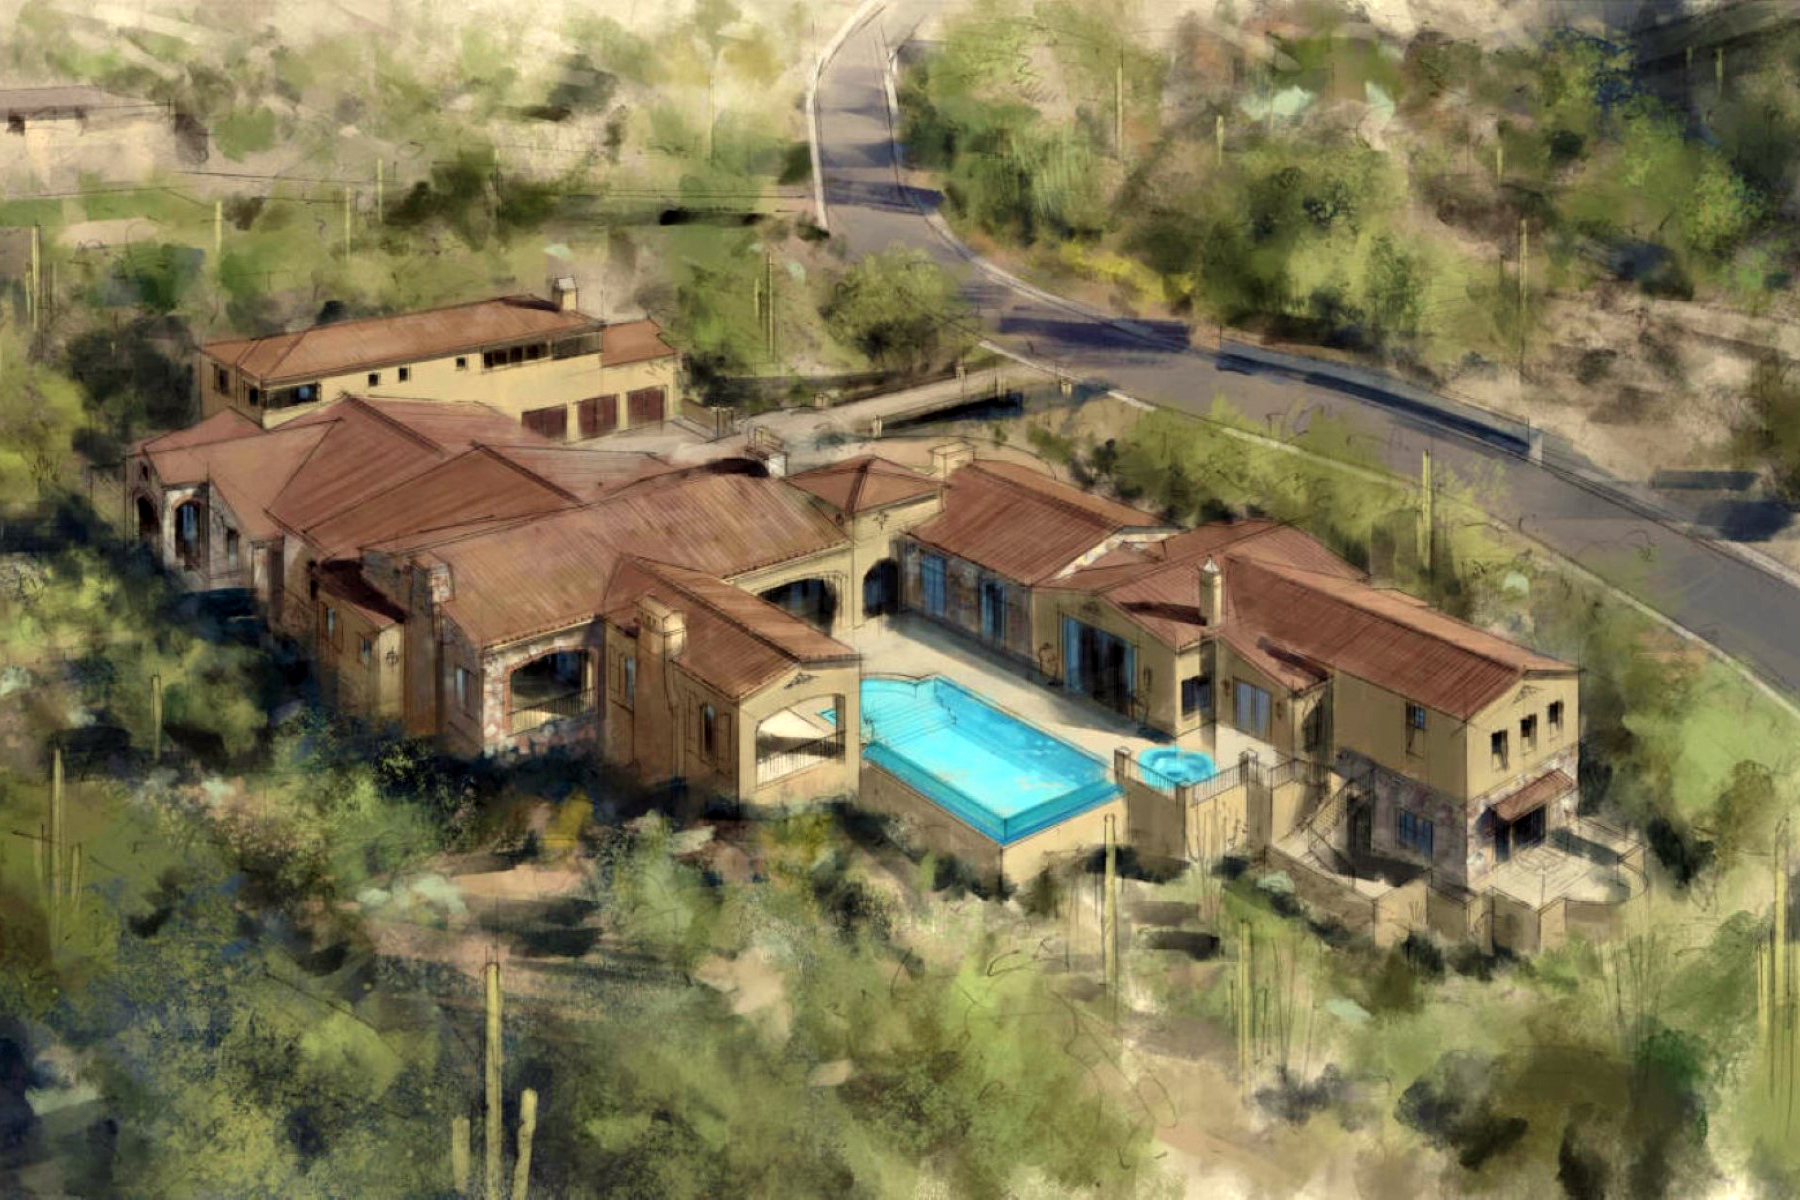 Casa Unifamiliar por un Venta en Stunning Silverleaf Luxury New Build With Valley Views 11004 E Feathersong Lane Scottsdale, Arizona 85255 Estados Unidos